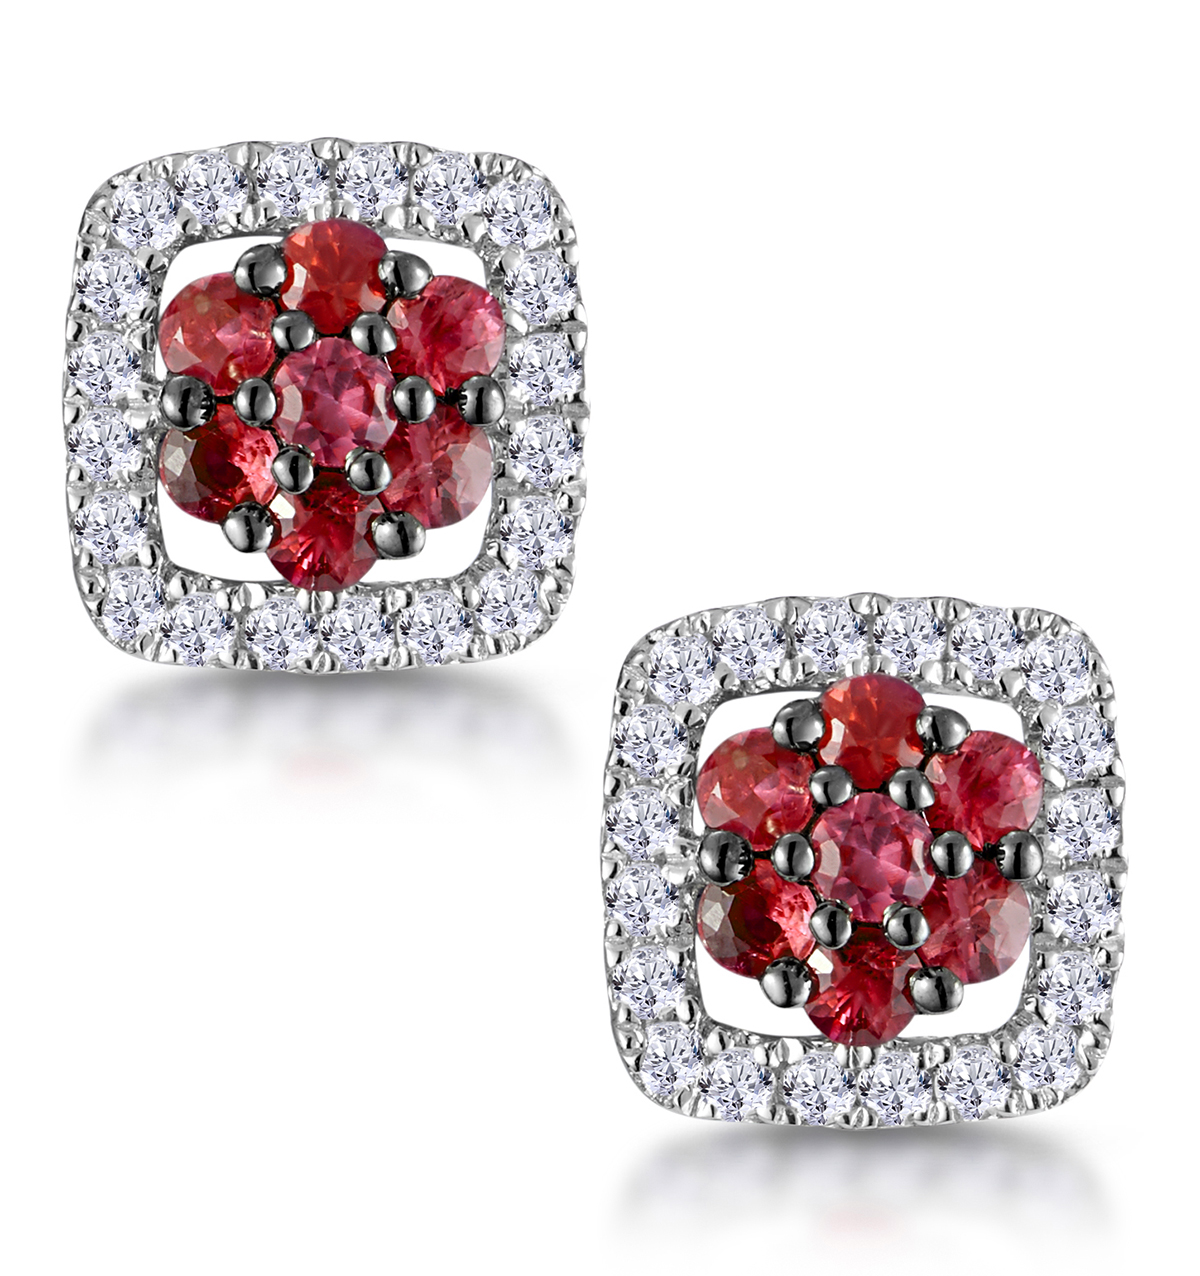 0.23CT RUBY AND DIAMOND STELLATO EARRINGS IN 9K WHITE GOLD